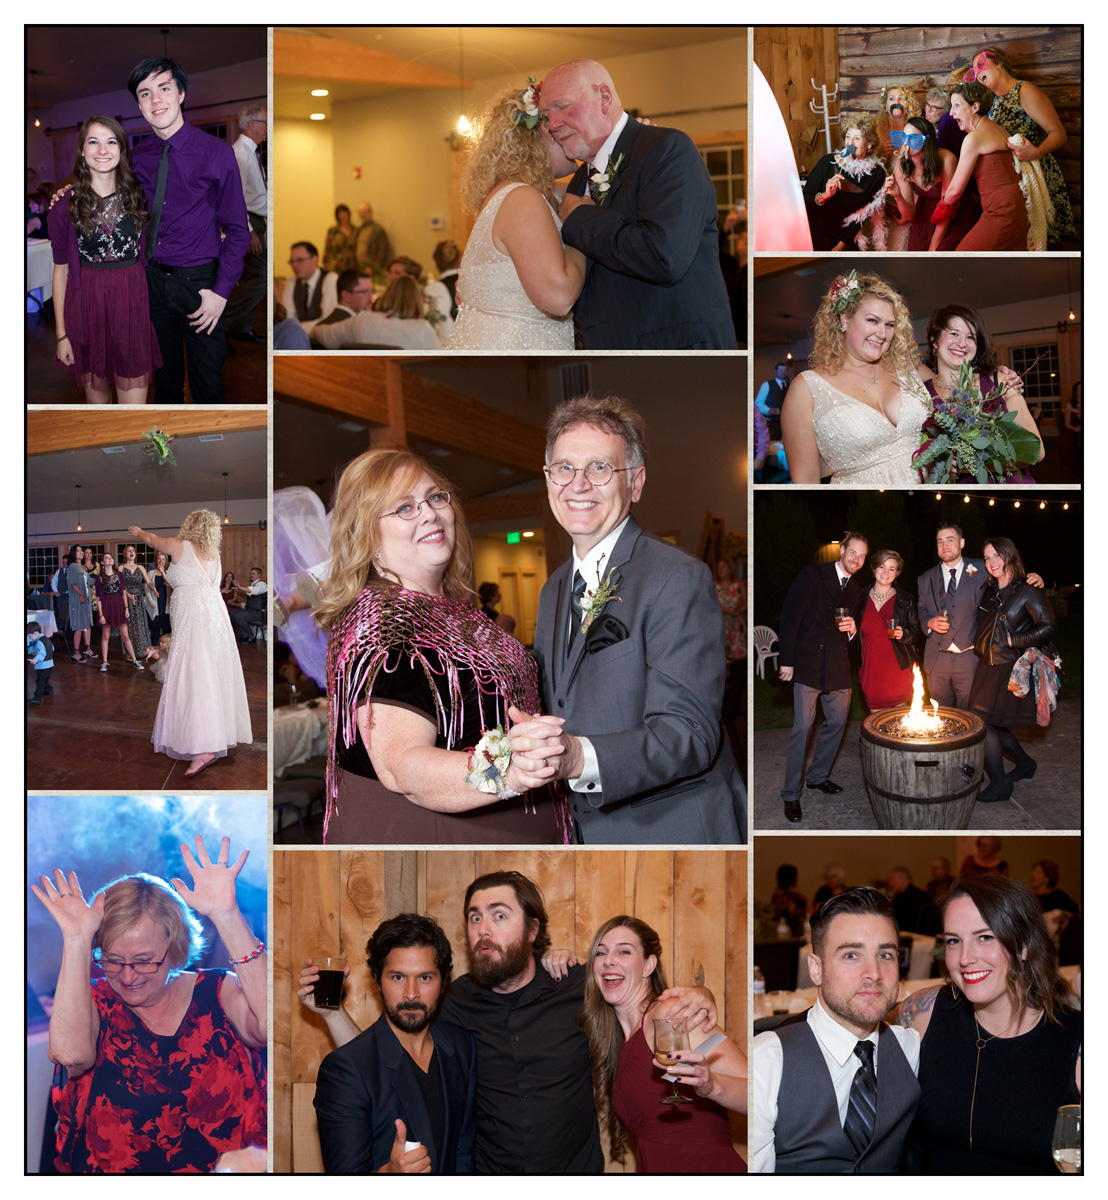 collage of photos from wedding reception